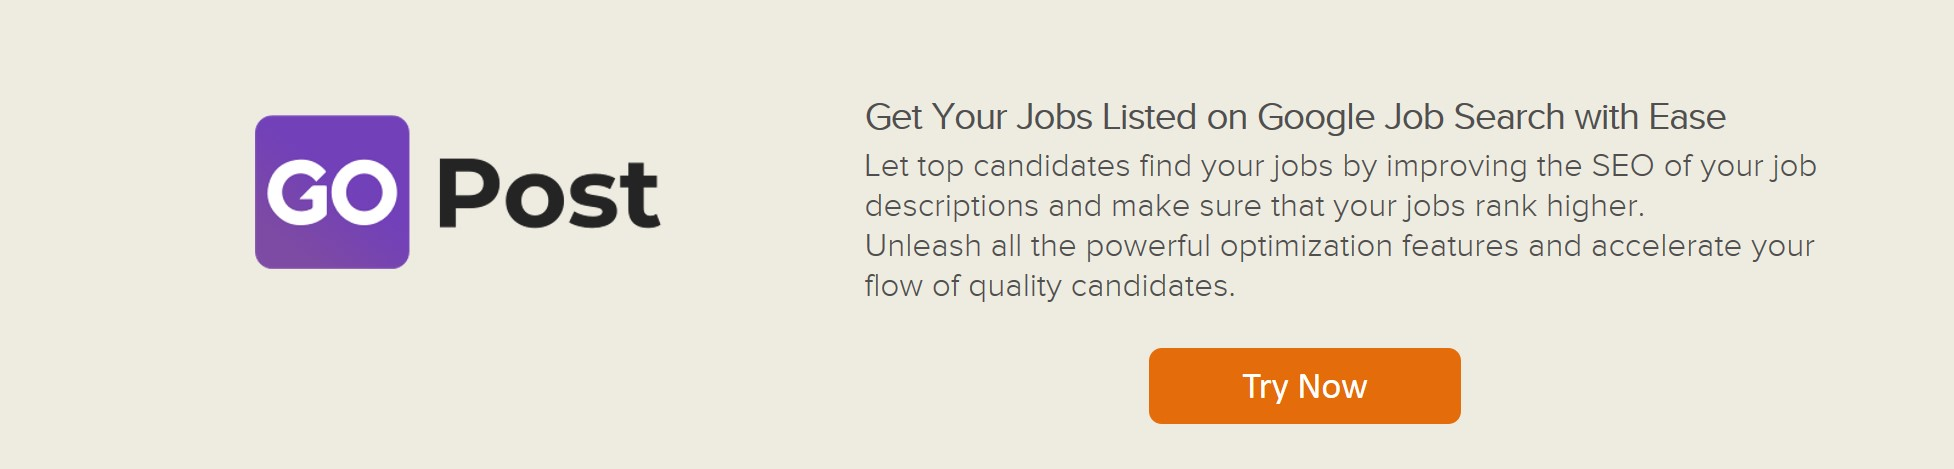 Get Your Jobs Listed on Google Job Search with Ease